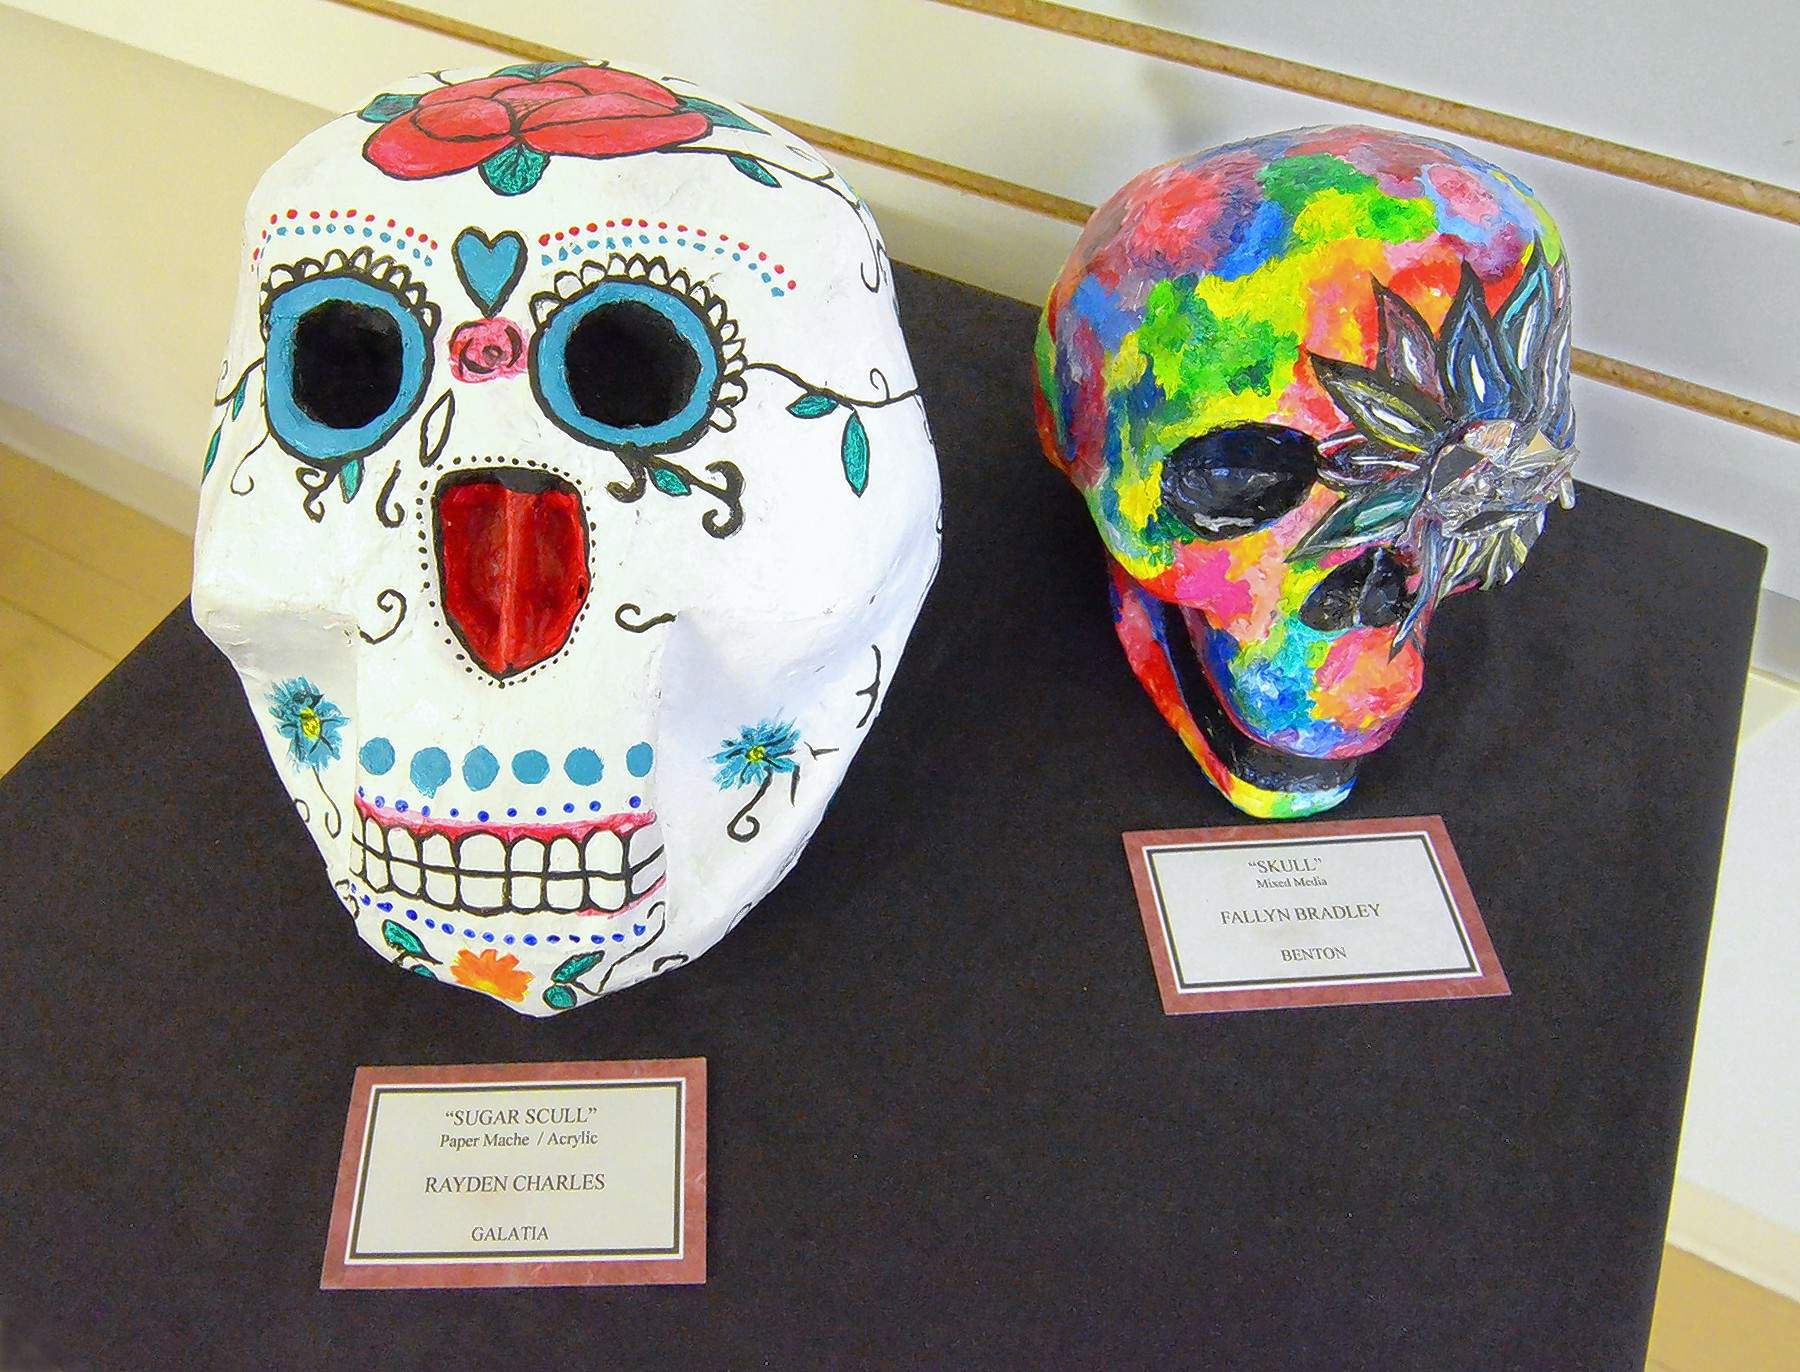 These two sculptures are among the more unique pieces in the show. The one on the left is a paper mache and acrylic creation by Ayden Charles of Galatia High School. The one on the right is a mixed media piece by Fallyn Bradley of Benton High School.